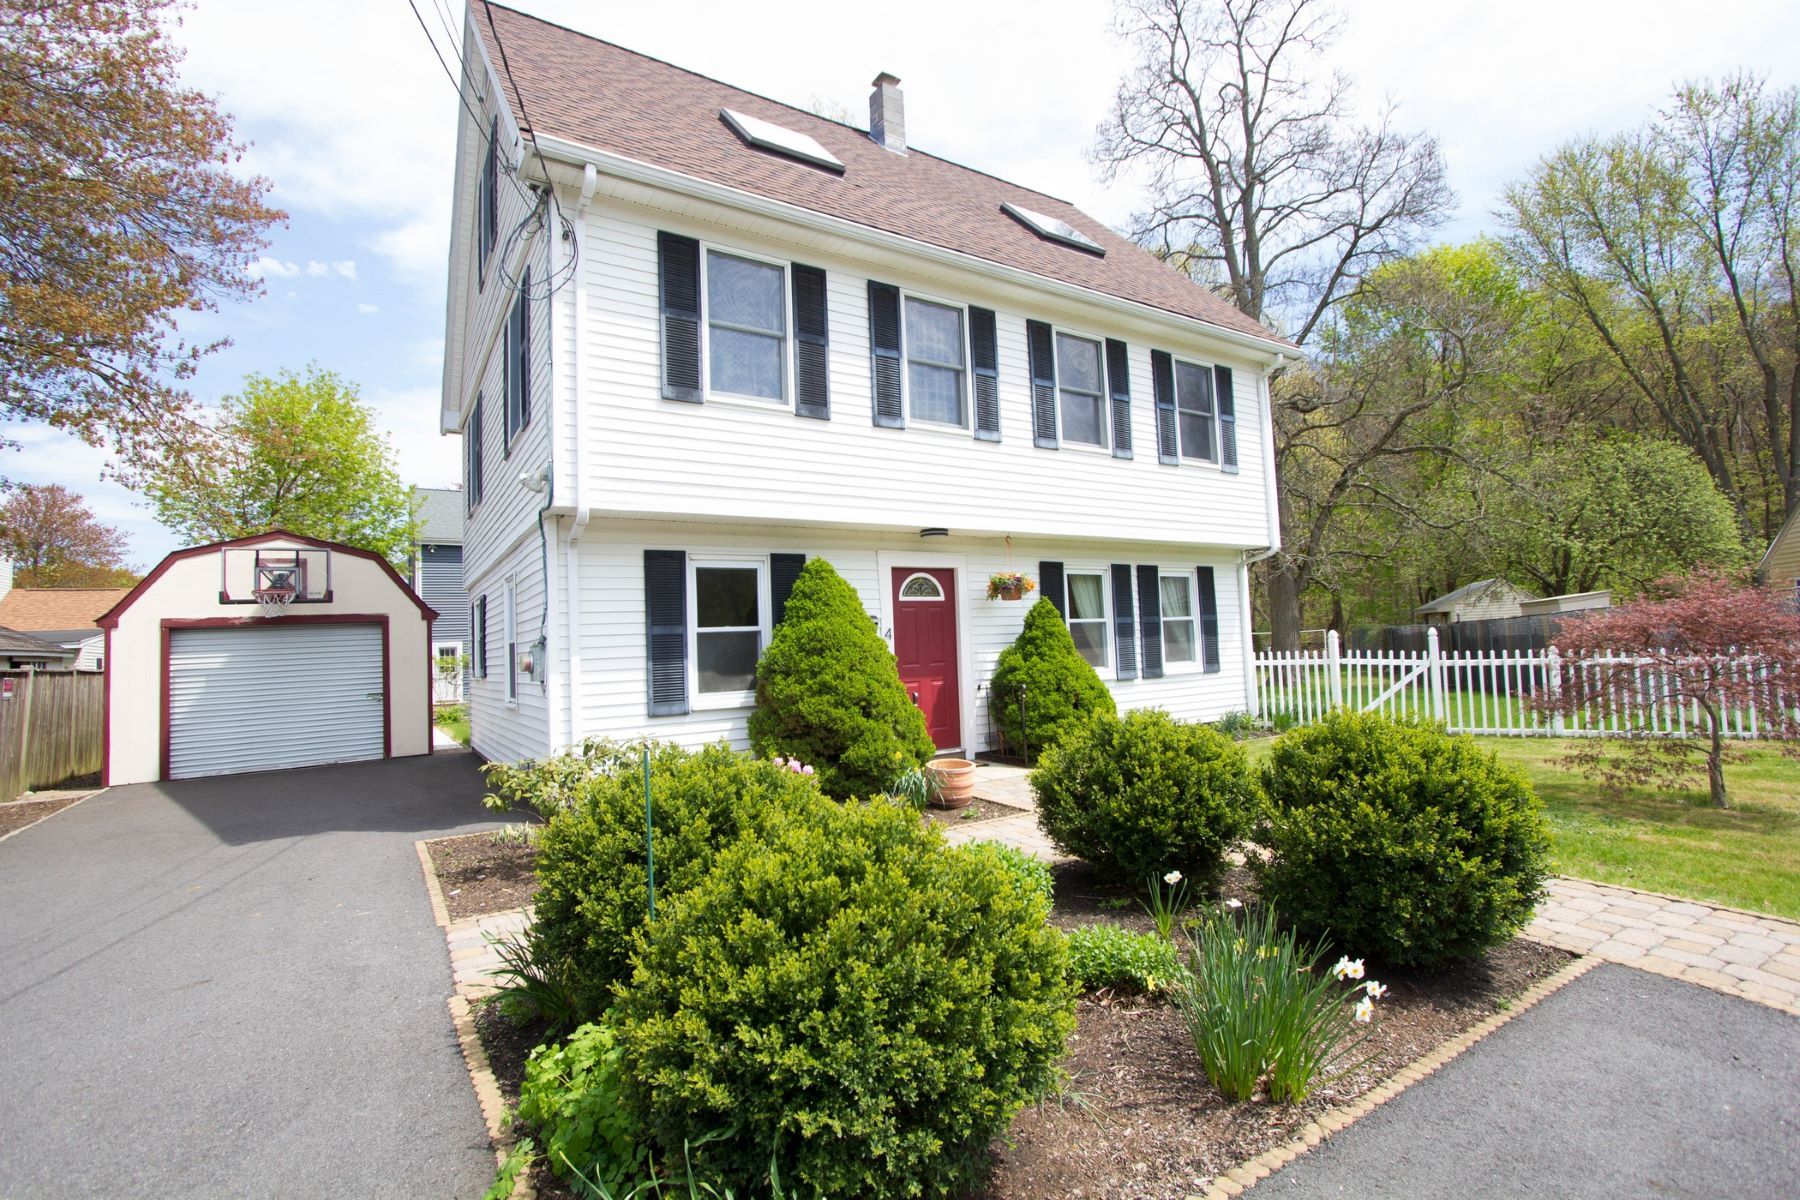 Single Family Home for Active at 4 Bellevue Ter, Maynard 4 Bellevue Ter Maynard, Massachusetts 01754 United States